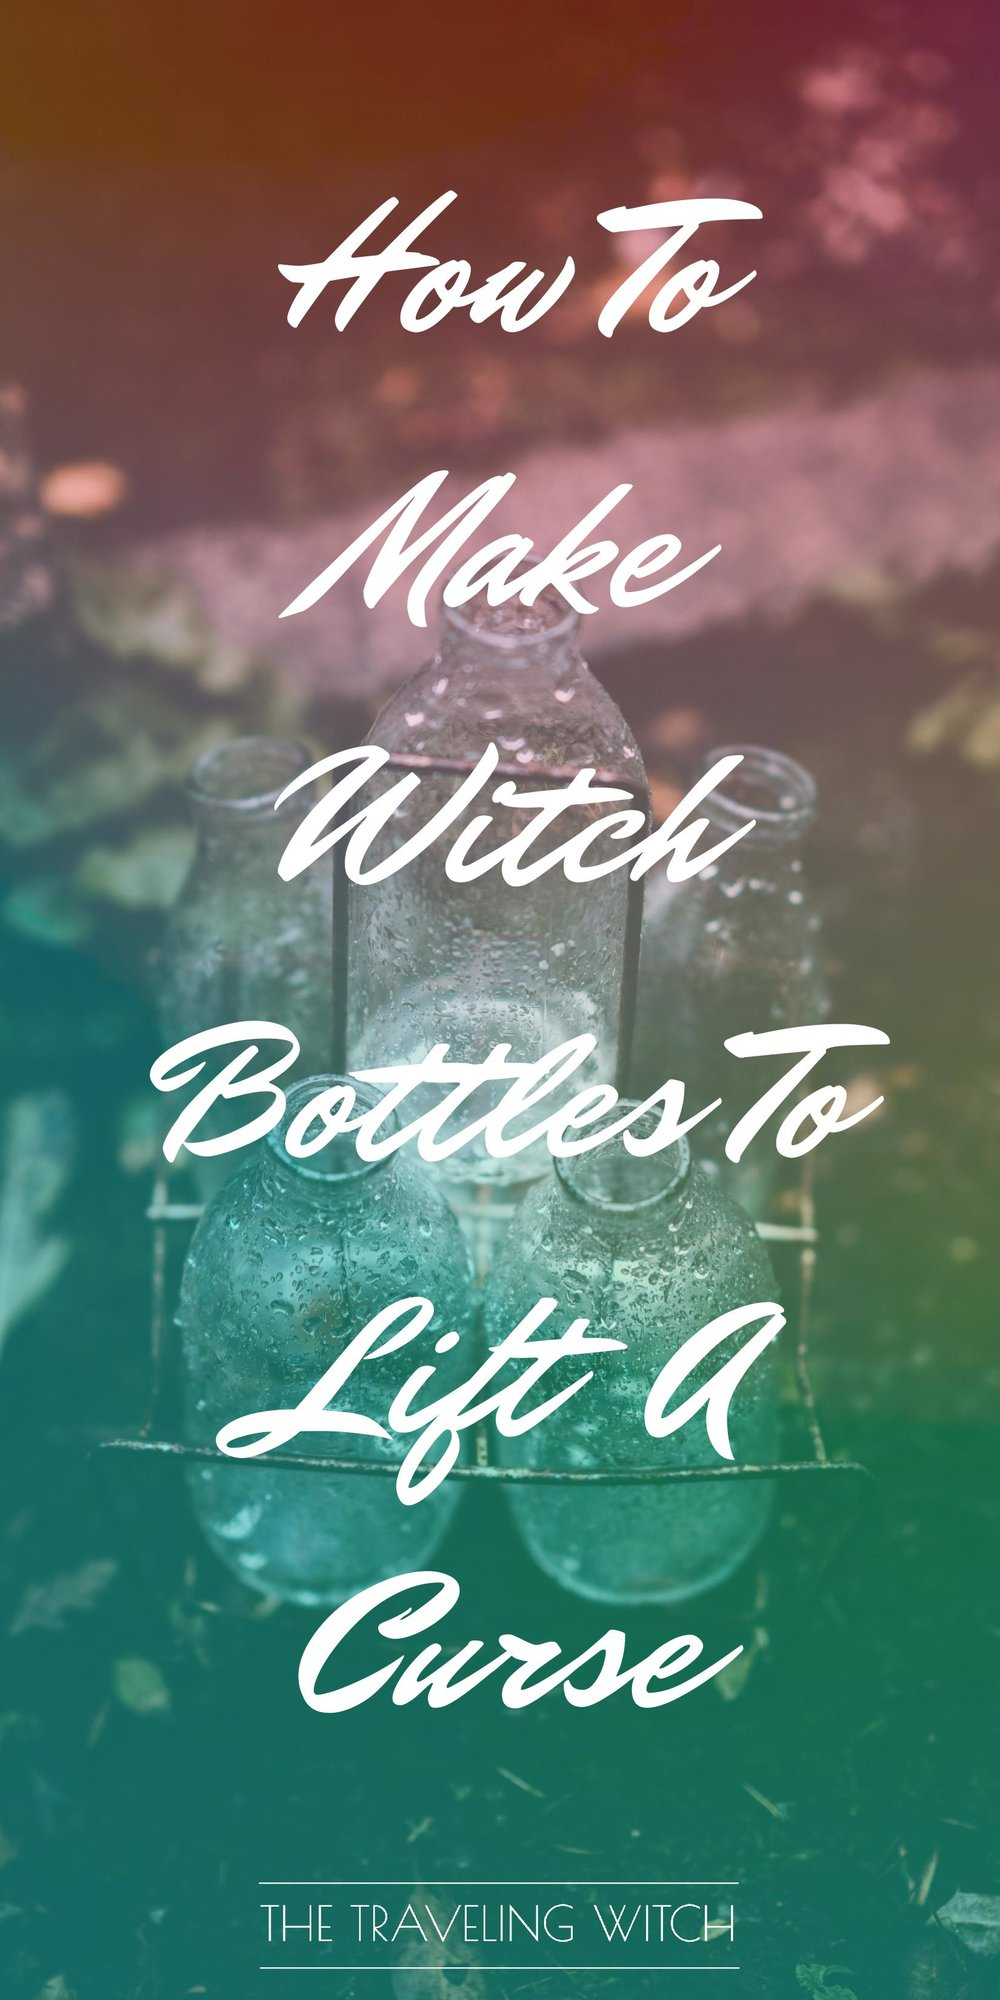 How To Make Witch Bottles To Lift A Curse // Witchcraft // Magic // The Traveling Witch